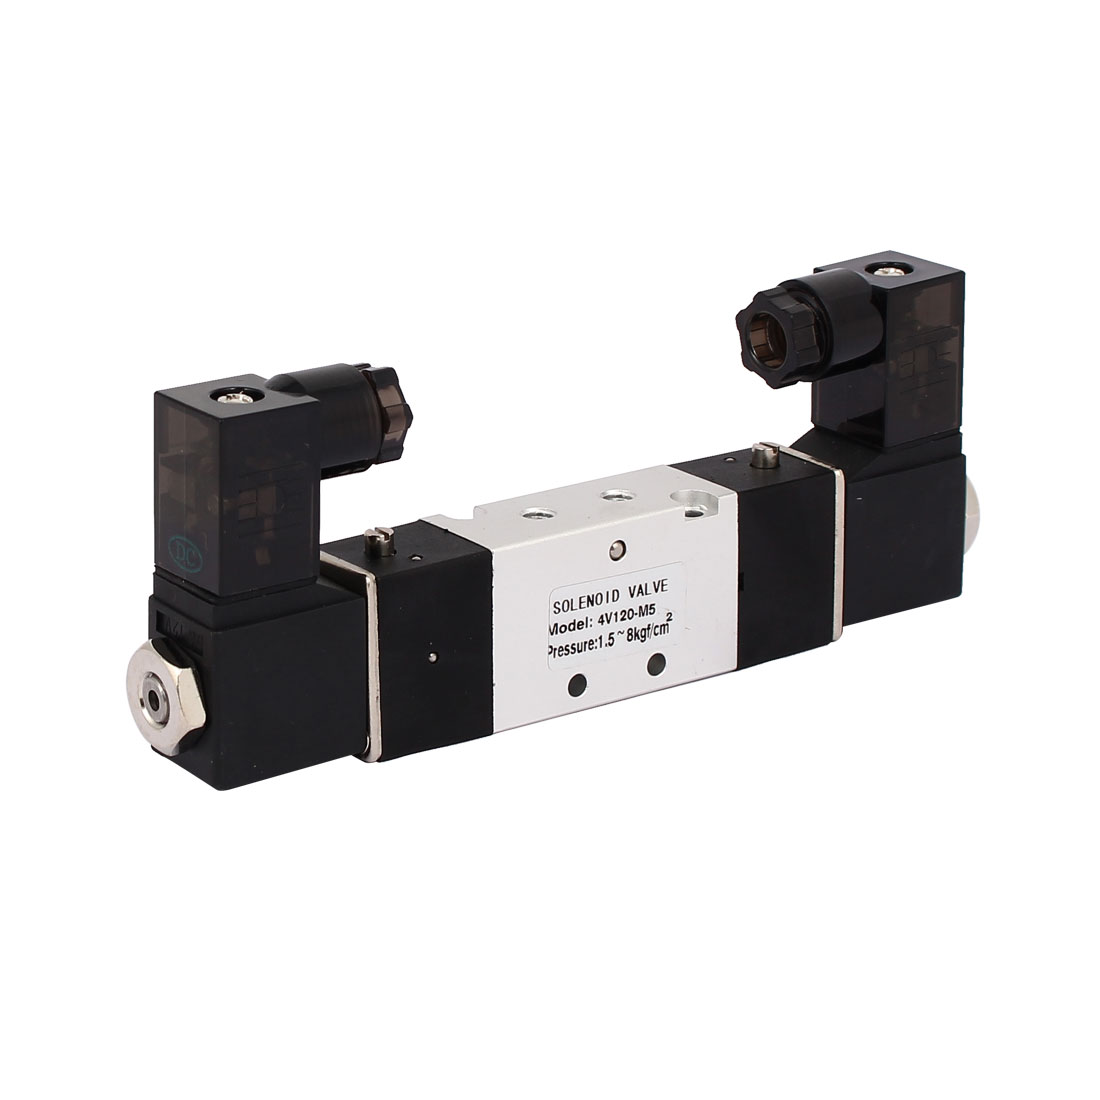 DC 12V 2 Position 5 Way Neutral Pneumatic Air Control Solenoid Valve 4V120-M5